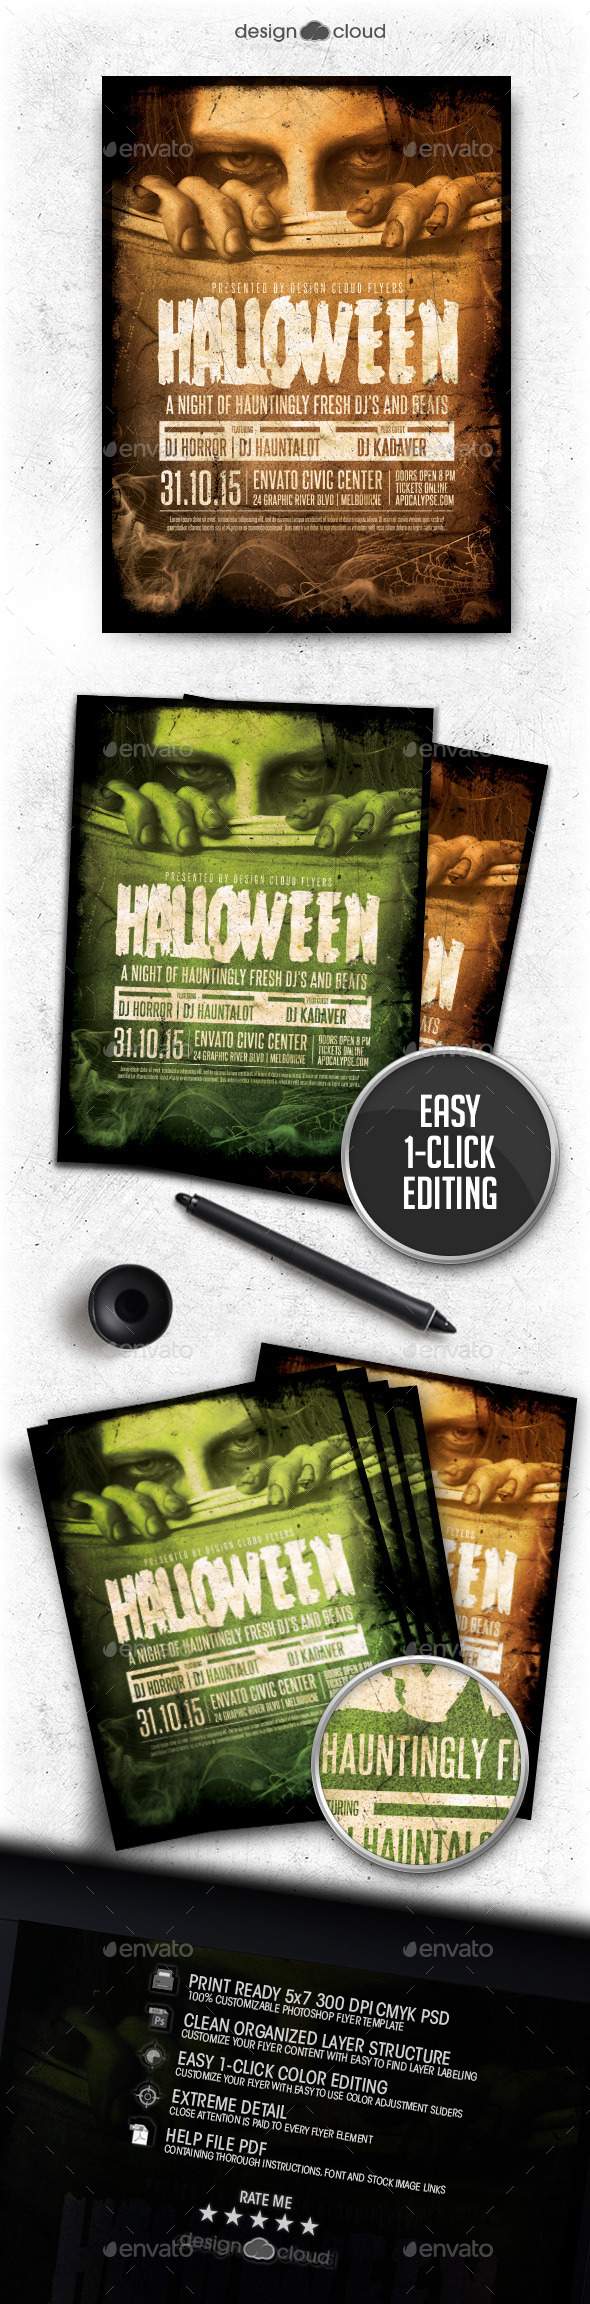 Halloween Event Flyer Template - Holidays Events